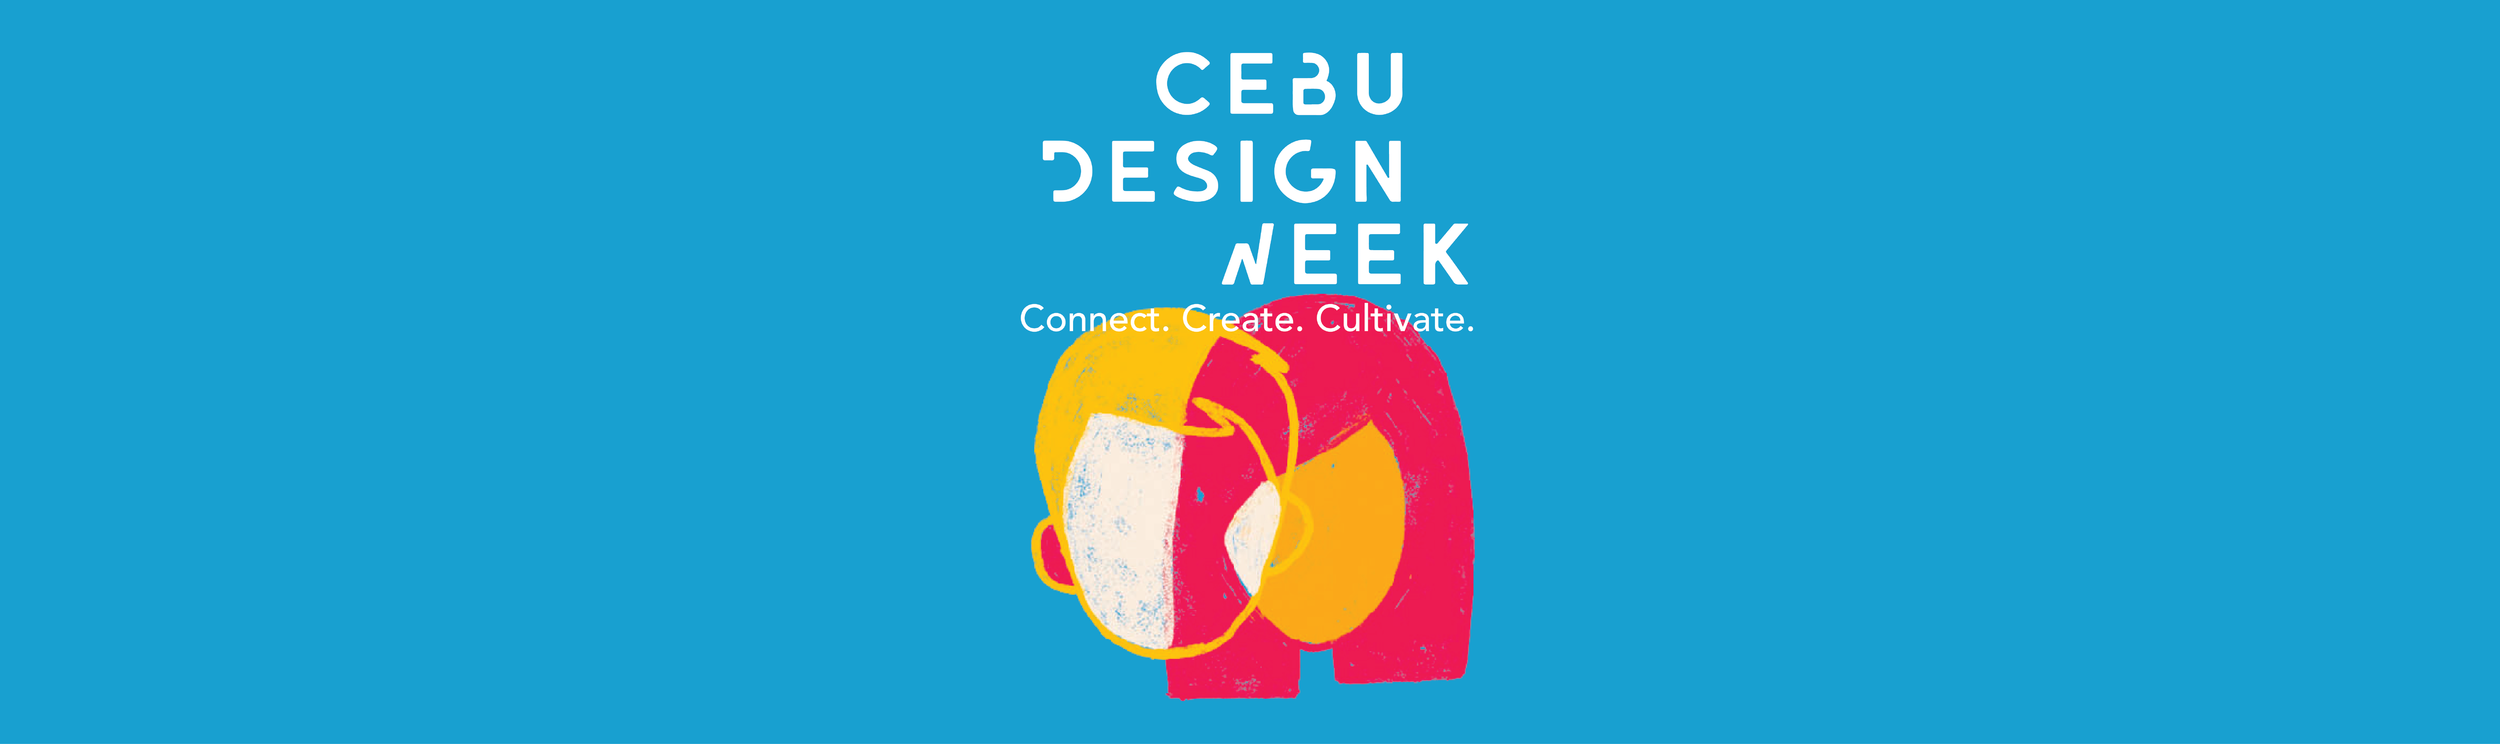 CDW Banner-04.png